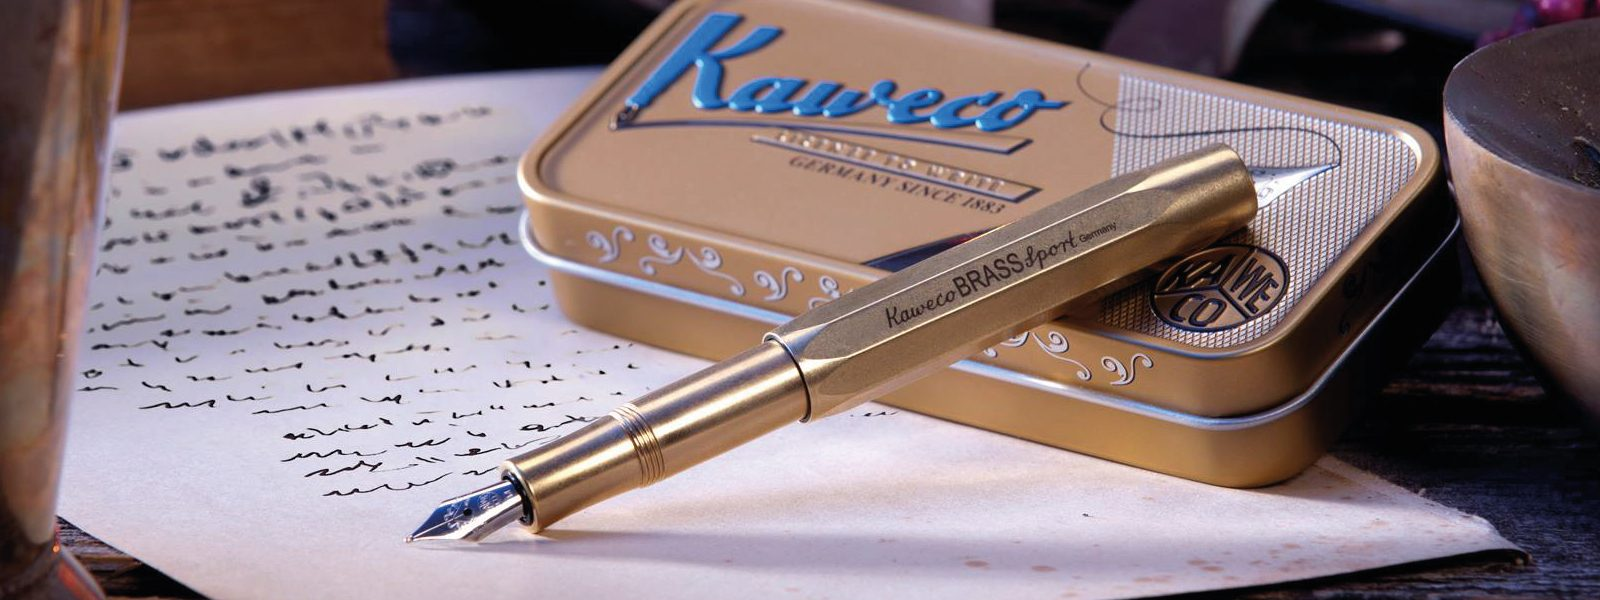 Kaweco Brass Sport Fountain Pen Front Cover